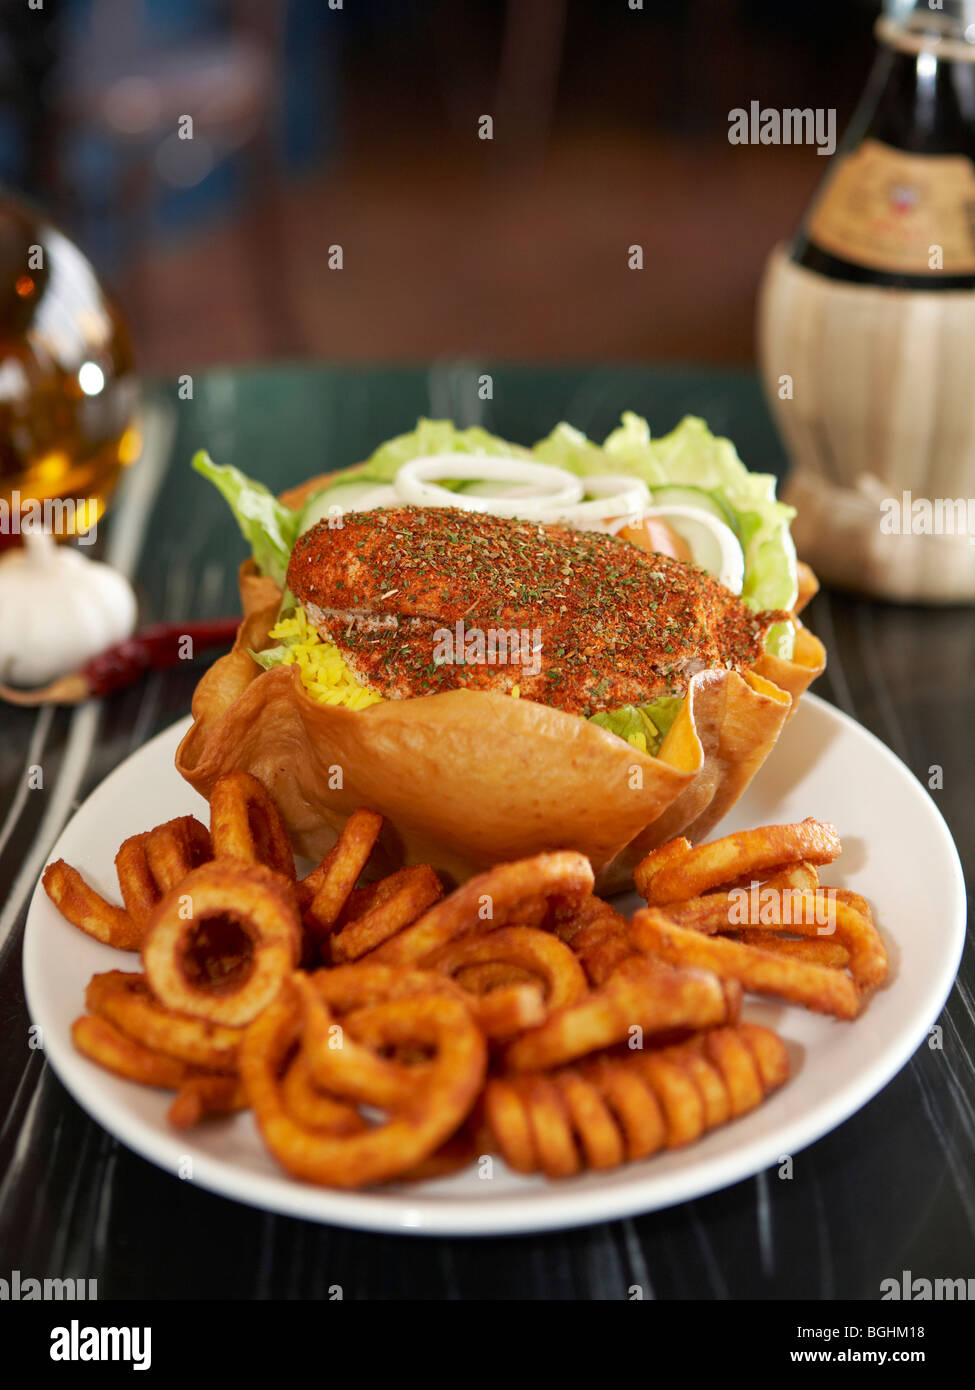 Junk Food - Stock Image